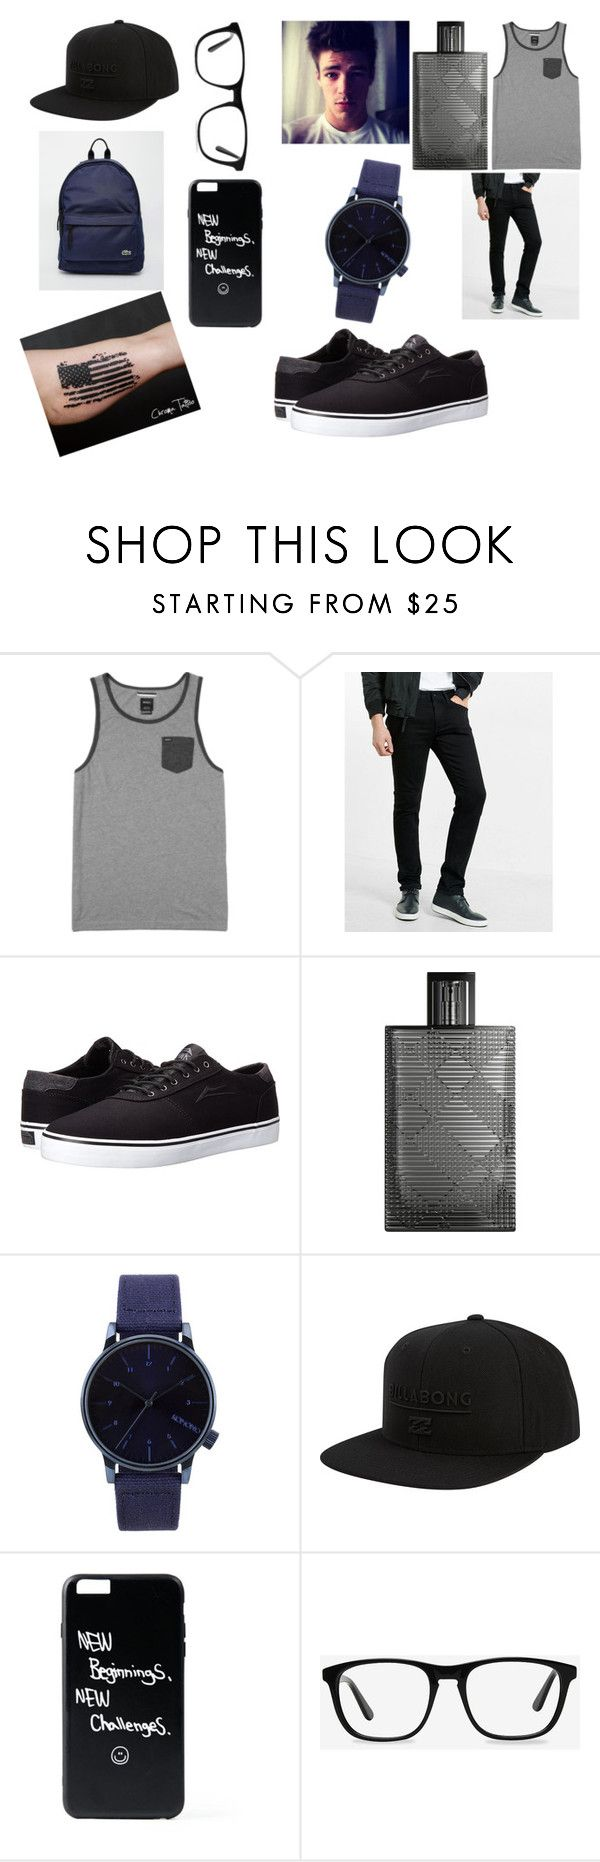 """Wesley"" by benhemmings on Polyvore featuring RVCA, Express, Lakai, Burberry, Komono, Billabong, Ace, Lacoste, men's fashion and menswear"